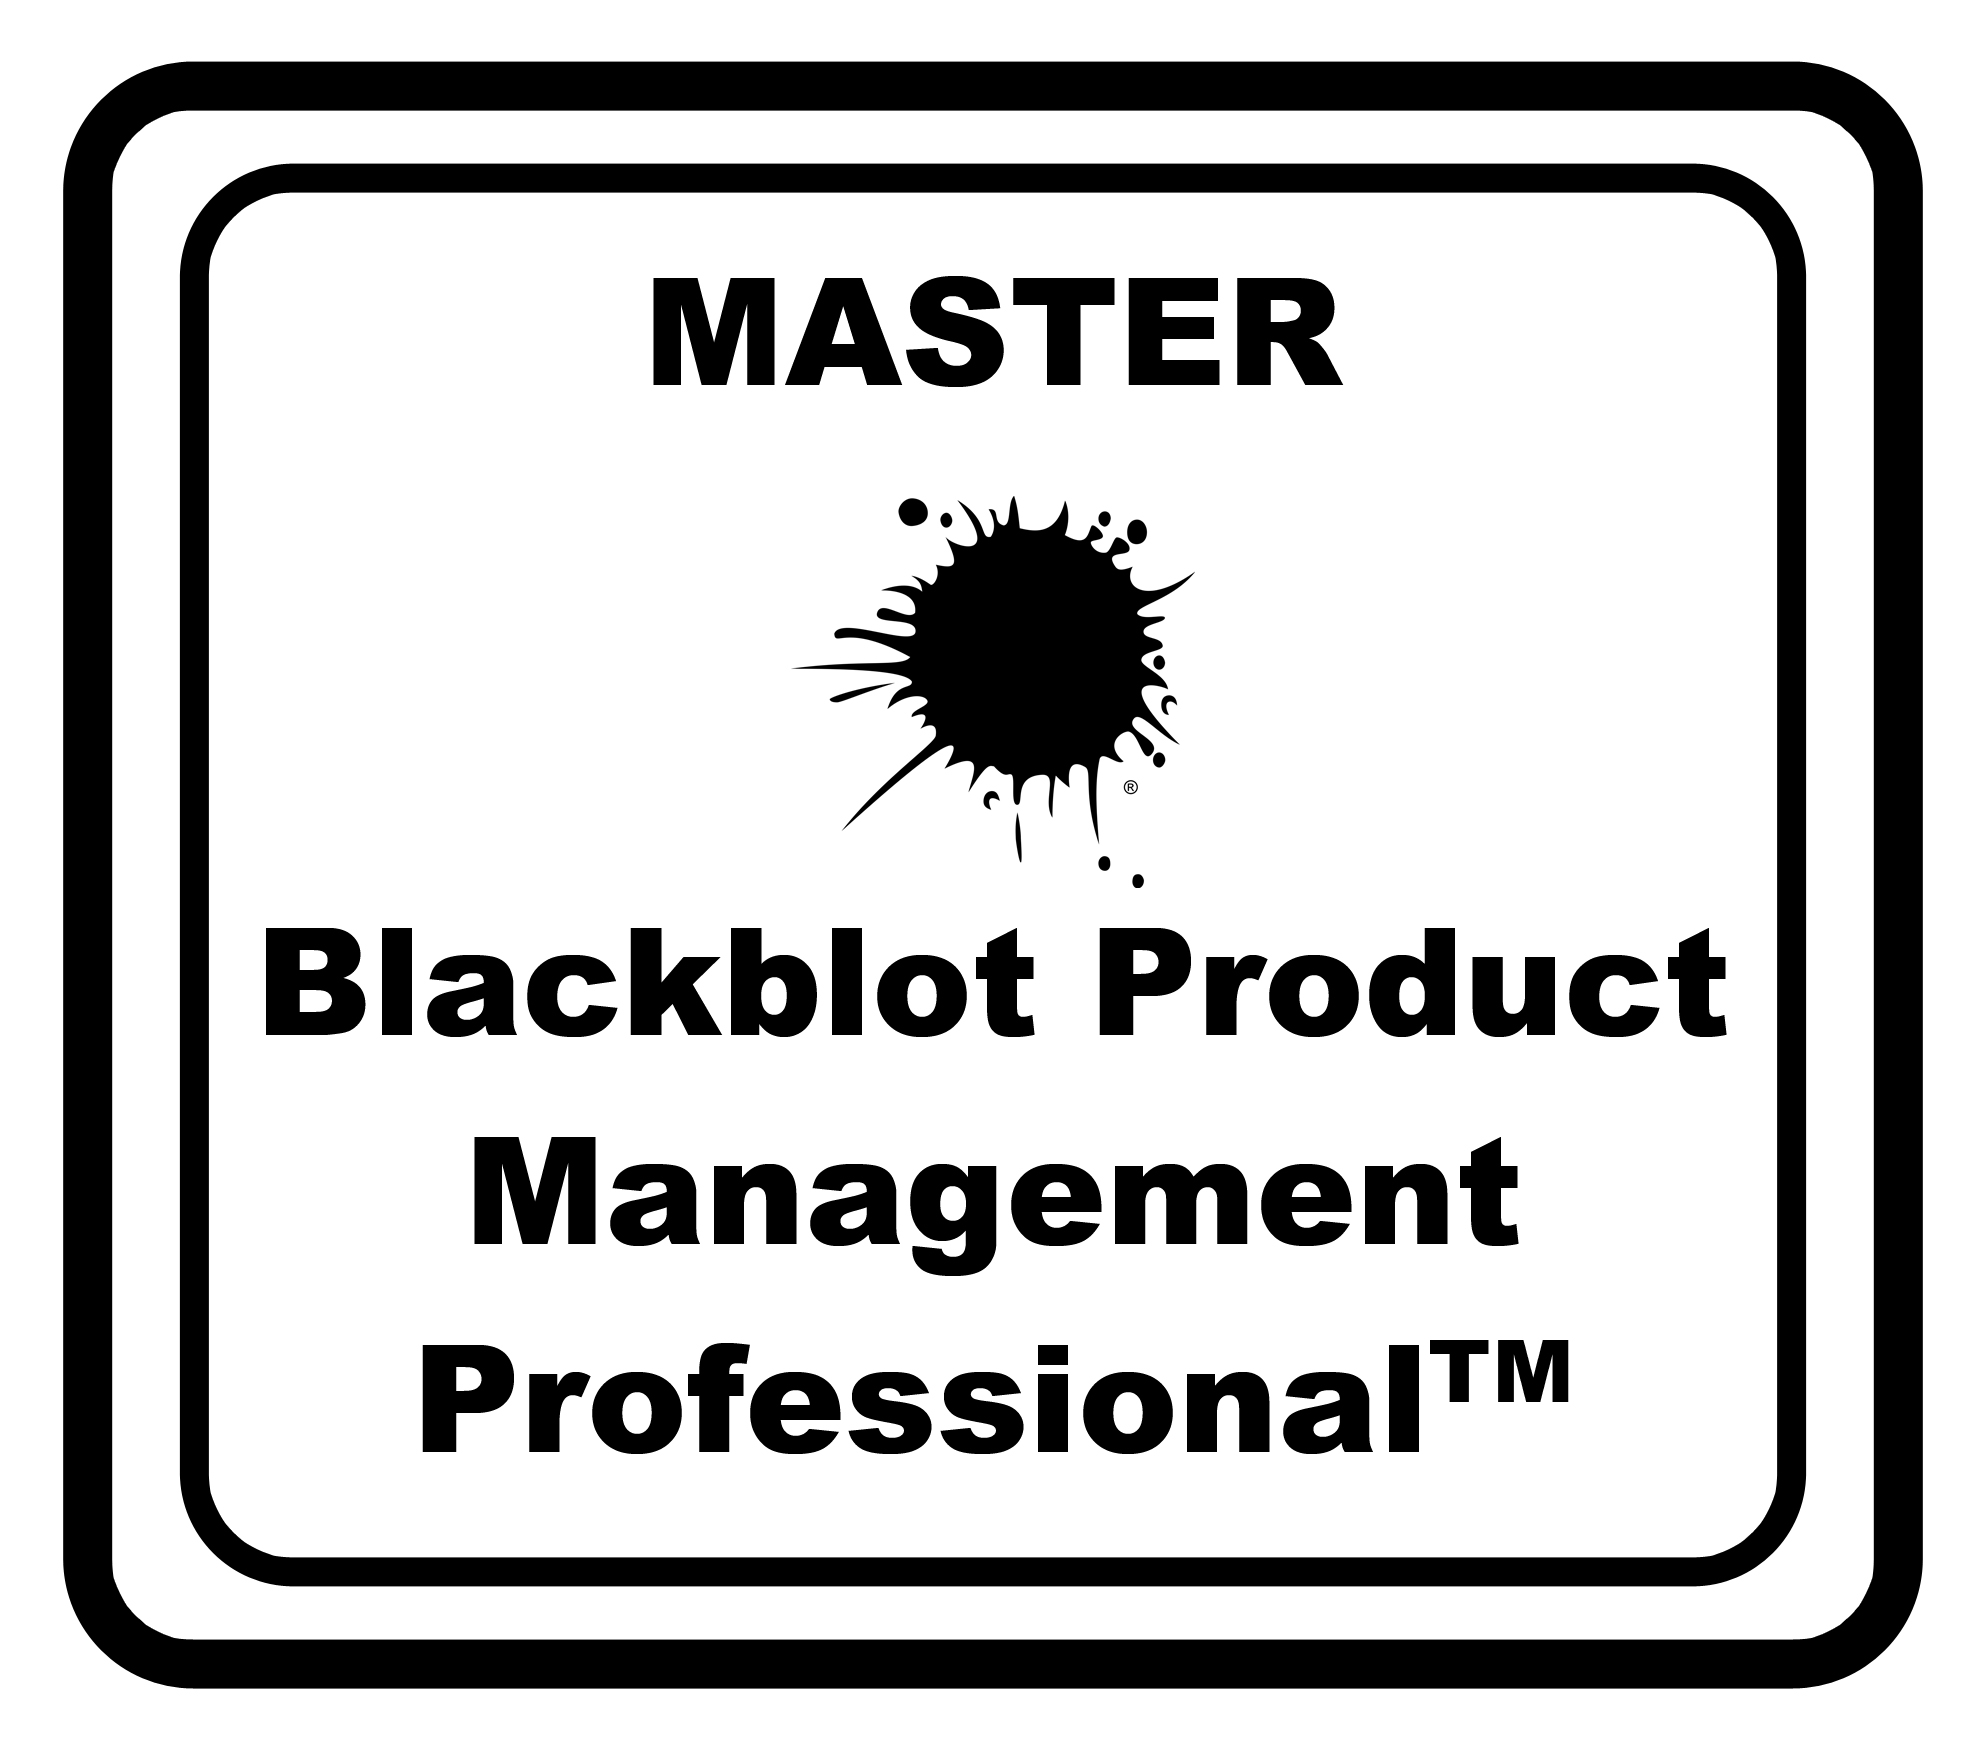 Master Blackblot Product Management Professional™ (Master BPMP)